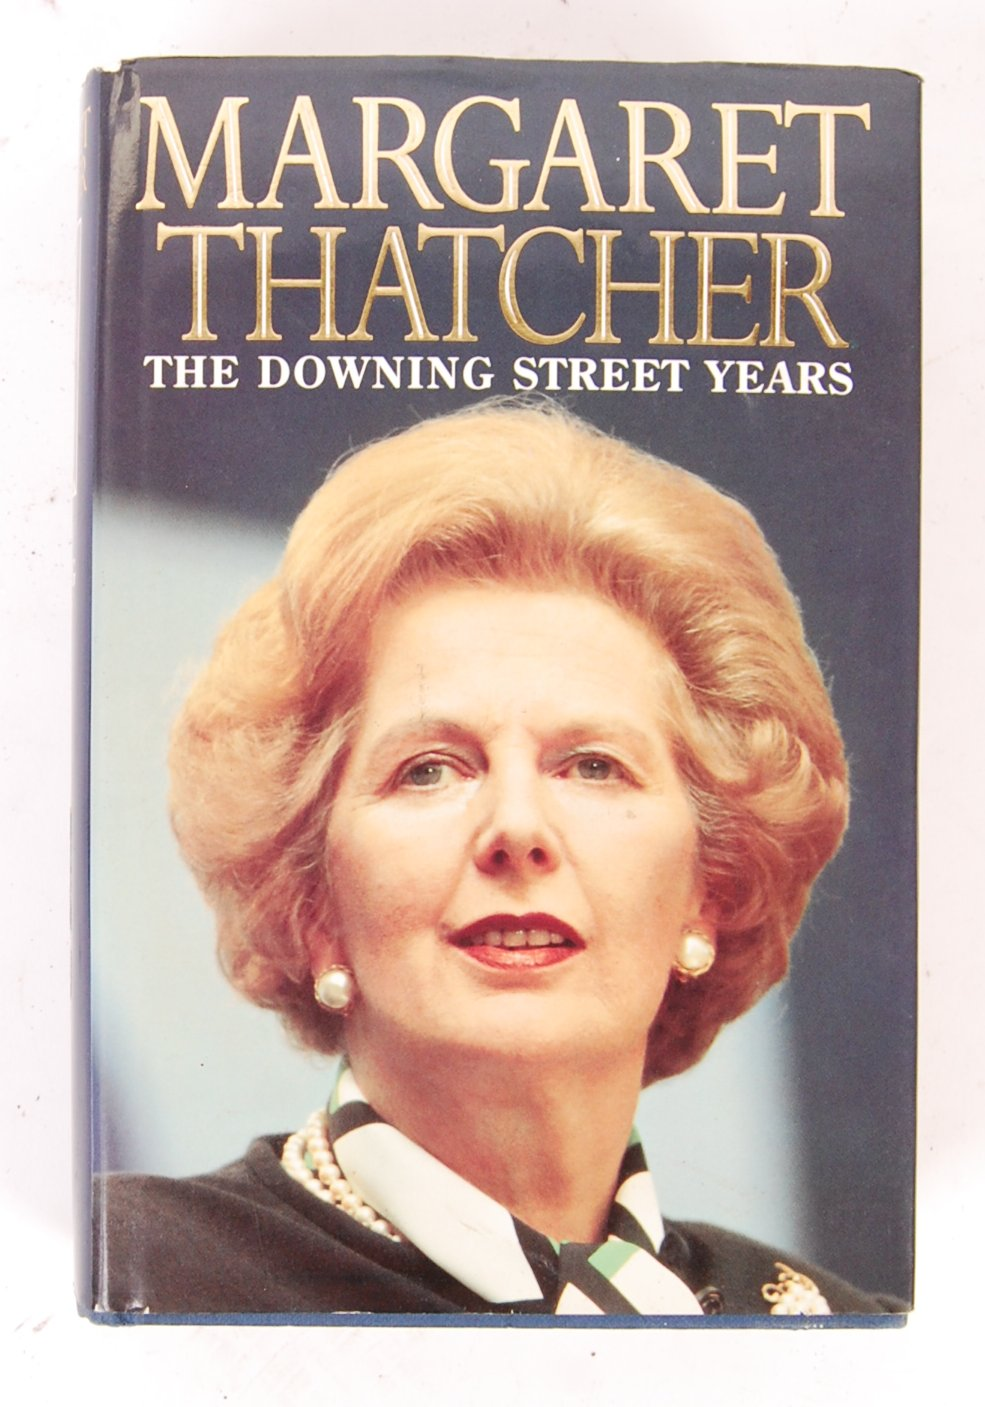 MARGARET THATCHER PRIME MINISTER ' THE DOWNING STREET YEARS ' SIGNED